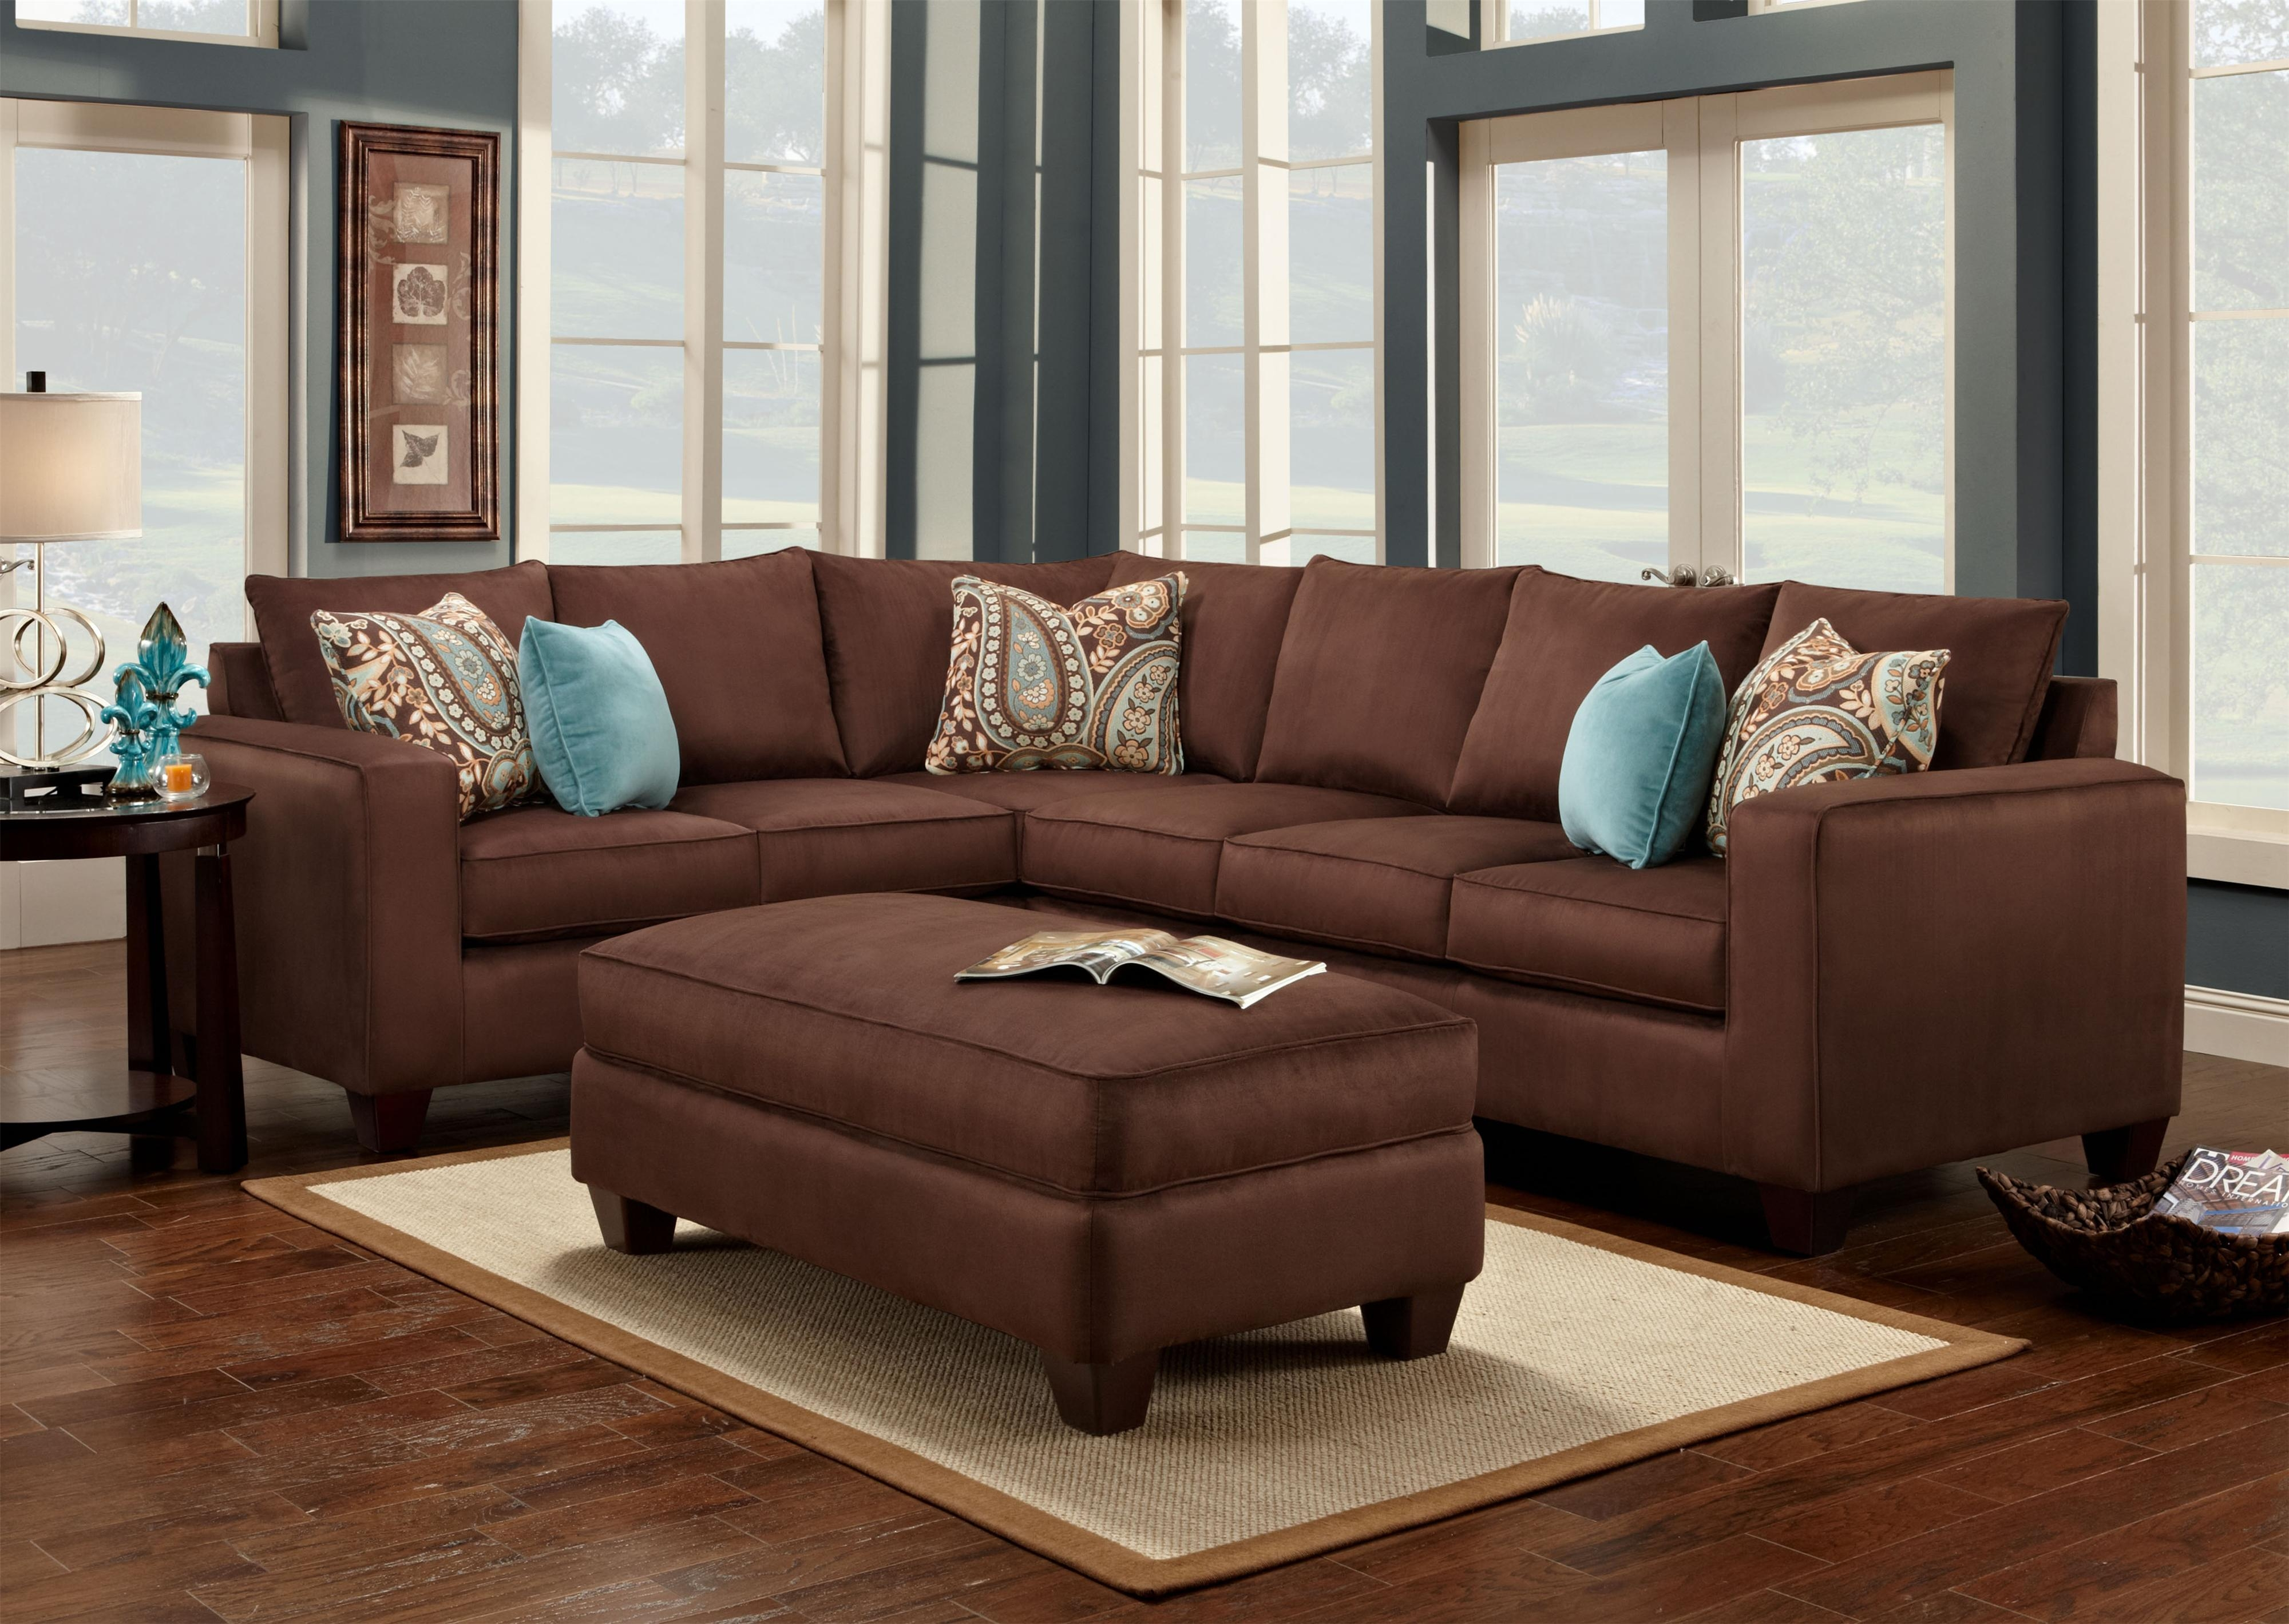 Designer Sofas And Curtains Tottenham Court Road Turquoise Sectional Sofa Leather Sectional Sofa